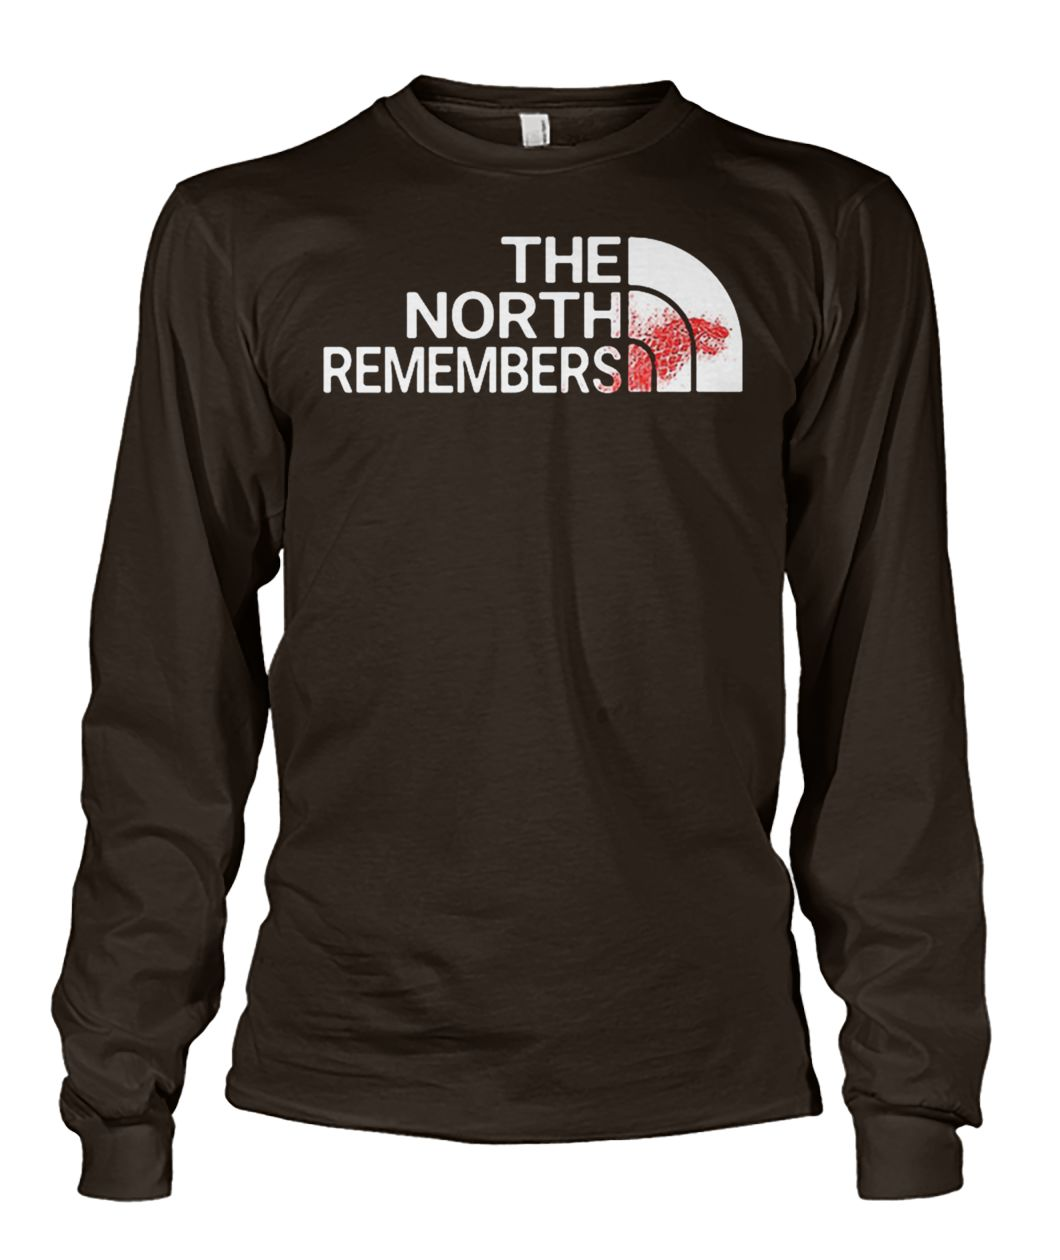 The north remembers unisex long sleeve